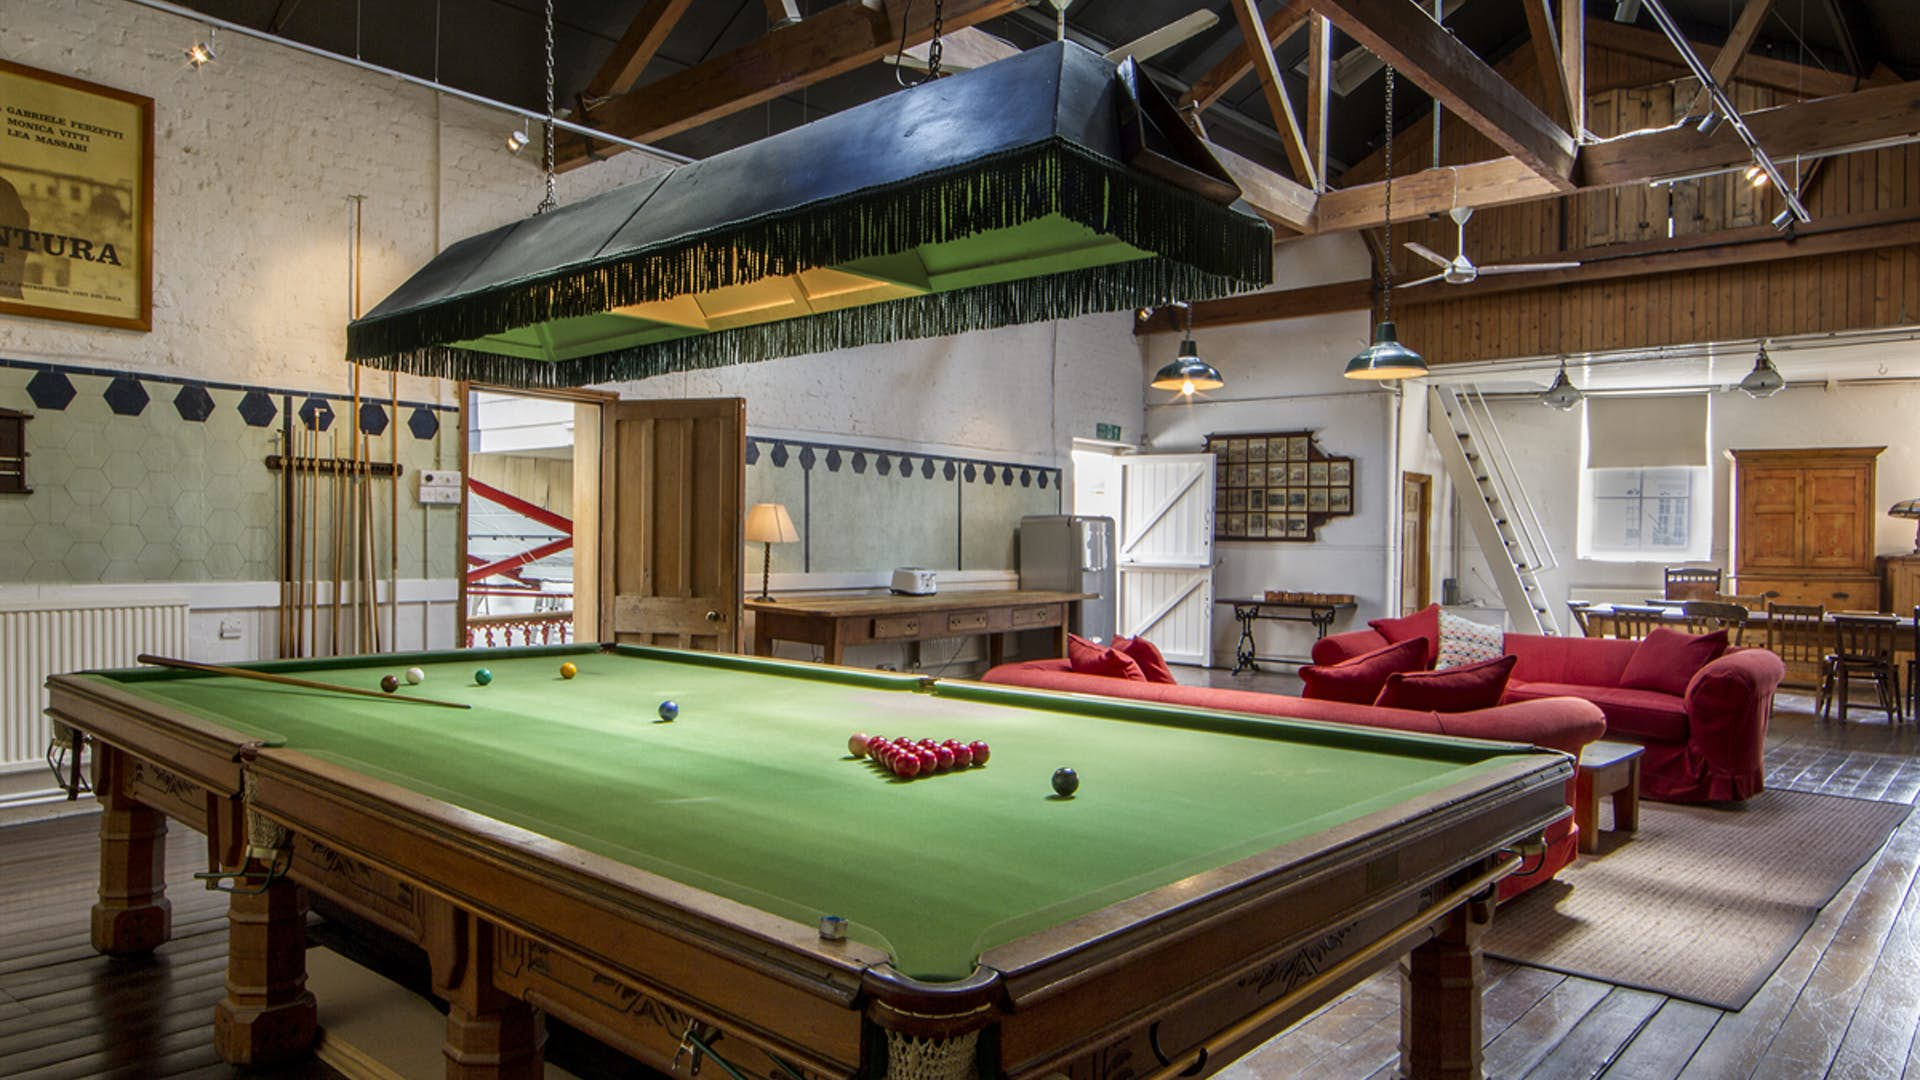 Park Village Billiards Room 3.jpg